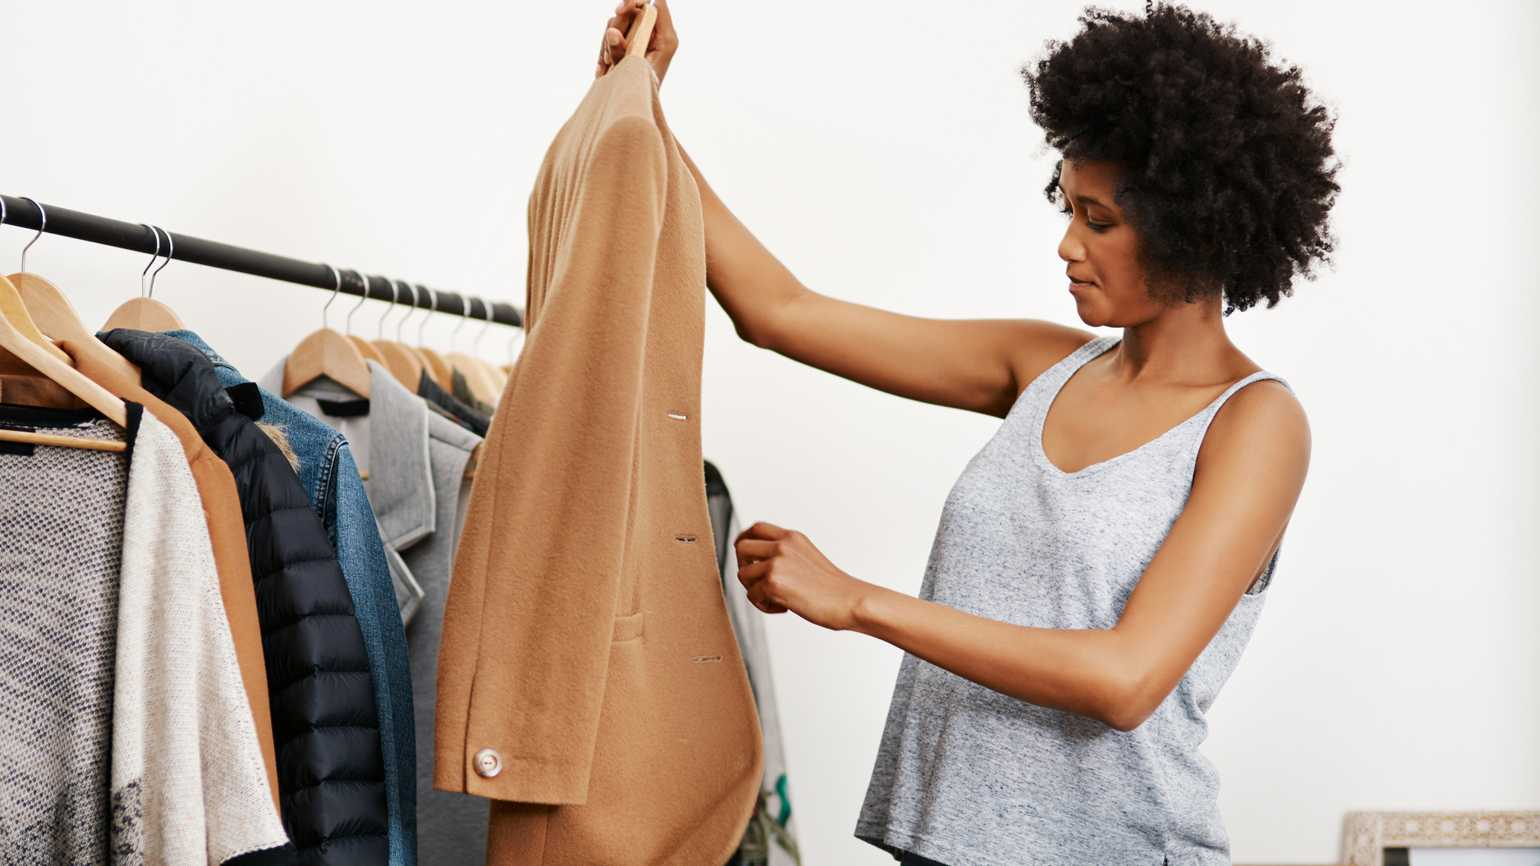 A woman preparing her work outfit.